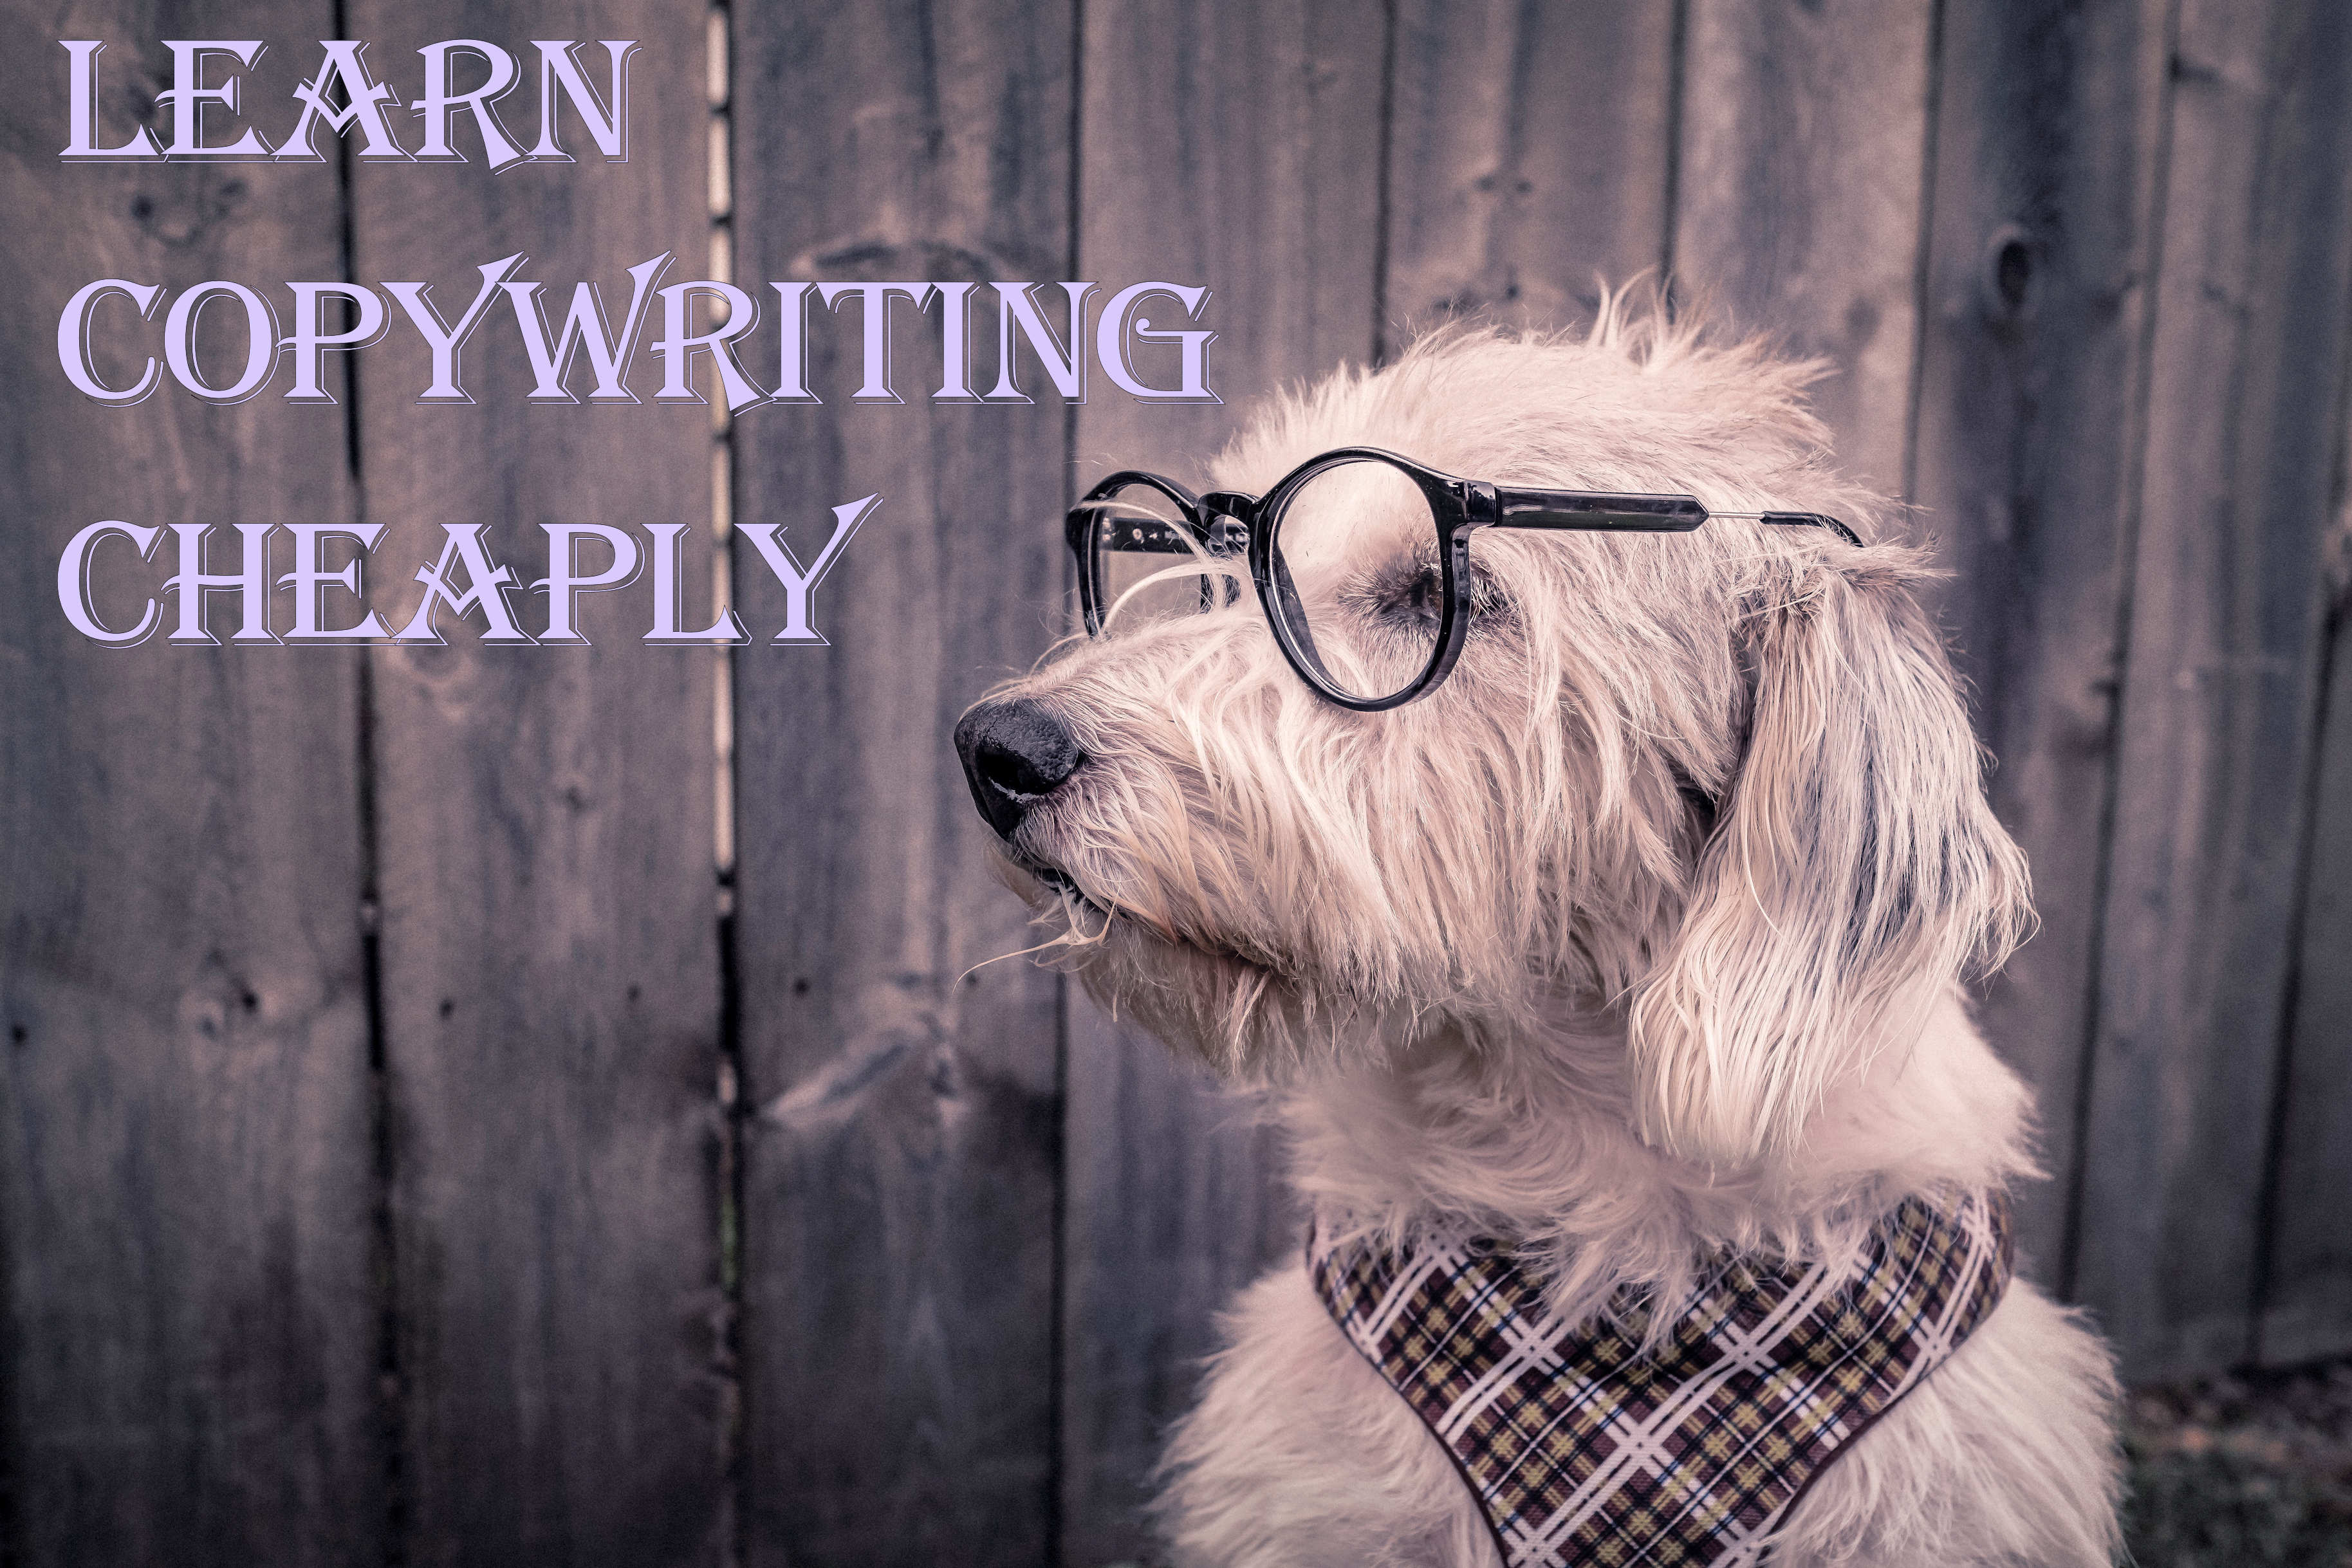 learn_copywriting_cheaply